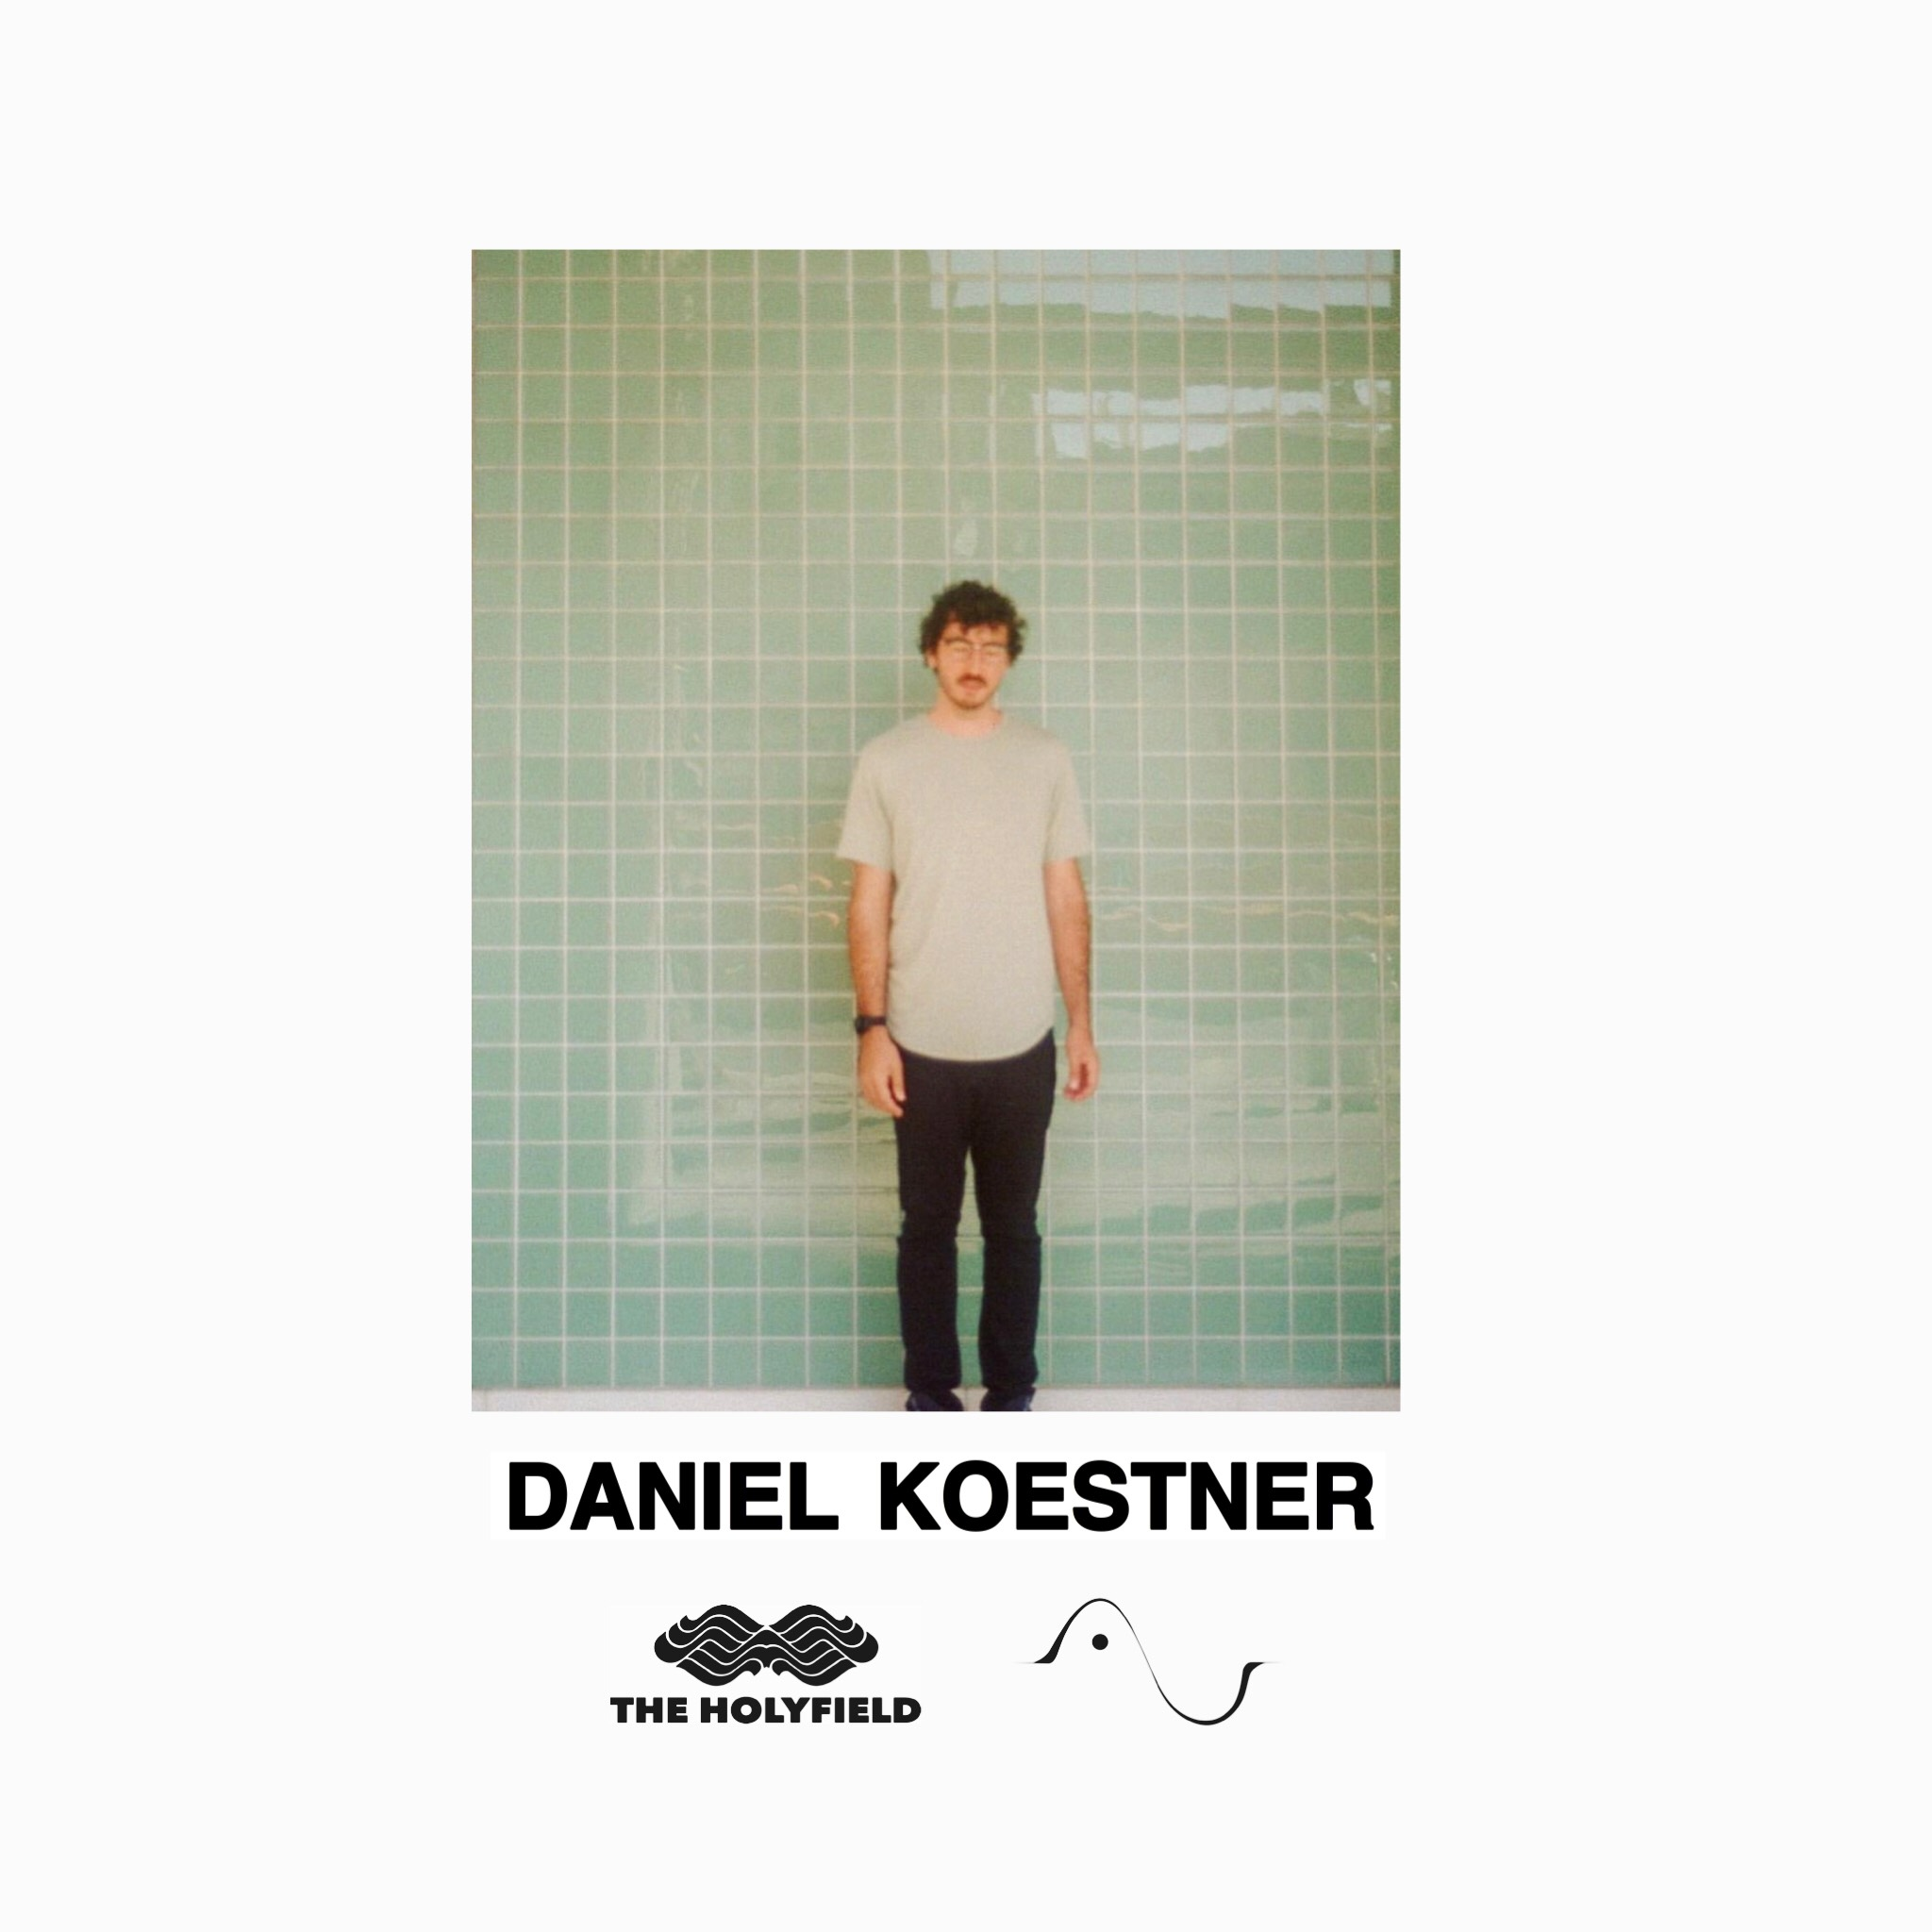 Daniel Koestner is a UCSD Student in Oceanography and a music composer. He will be talking about using music and meditation to turn his Monsters into Masterpieces.